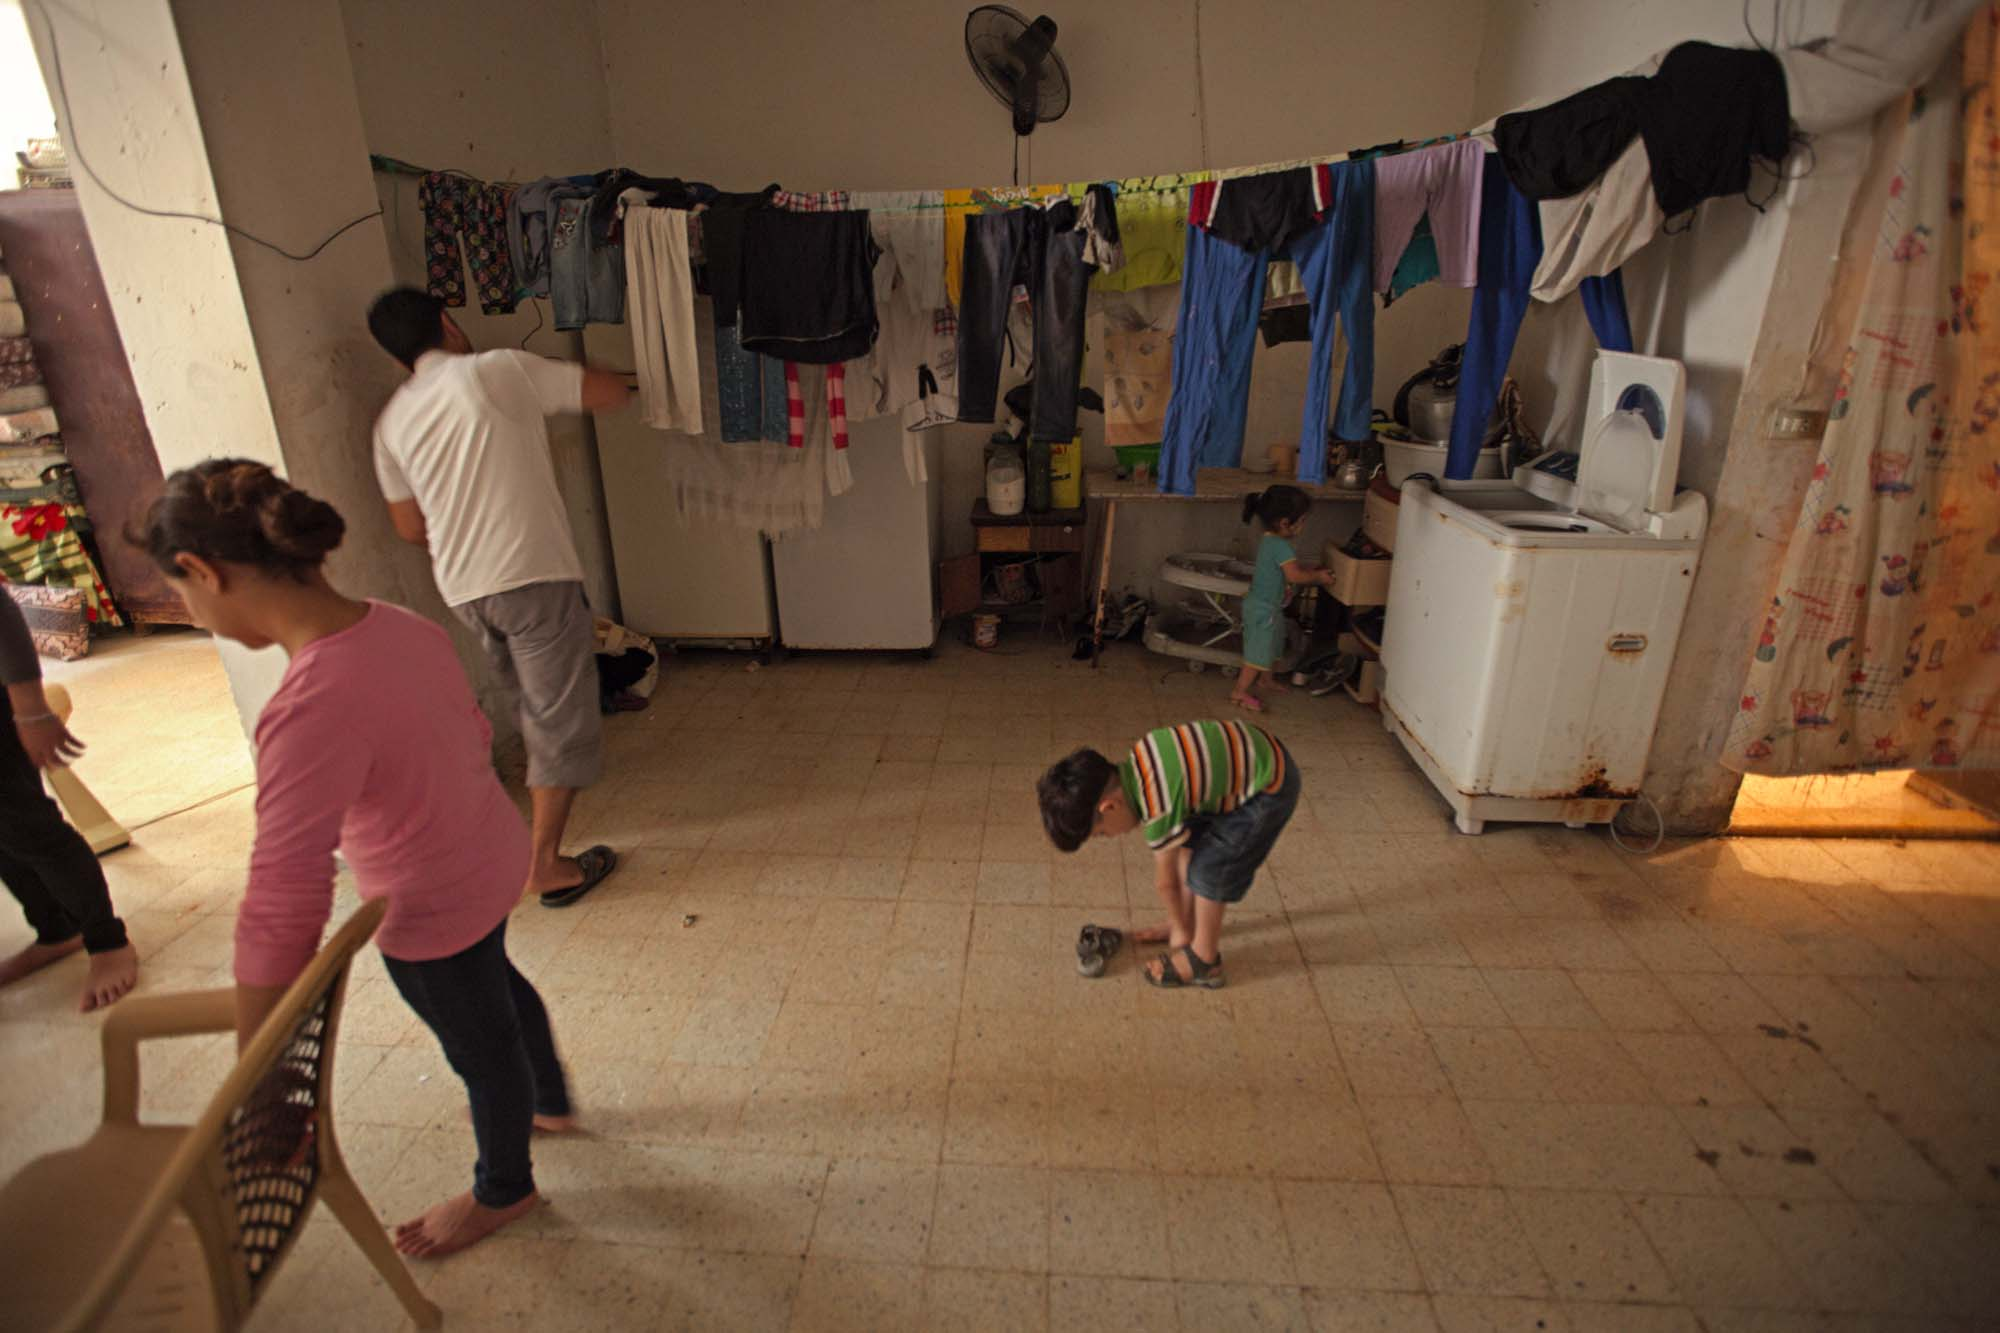 A family of people move around a room with a kitchen on one side and clothes hanging on a line.